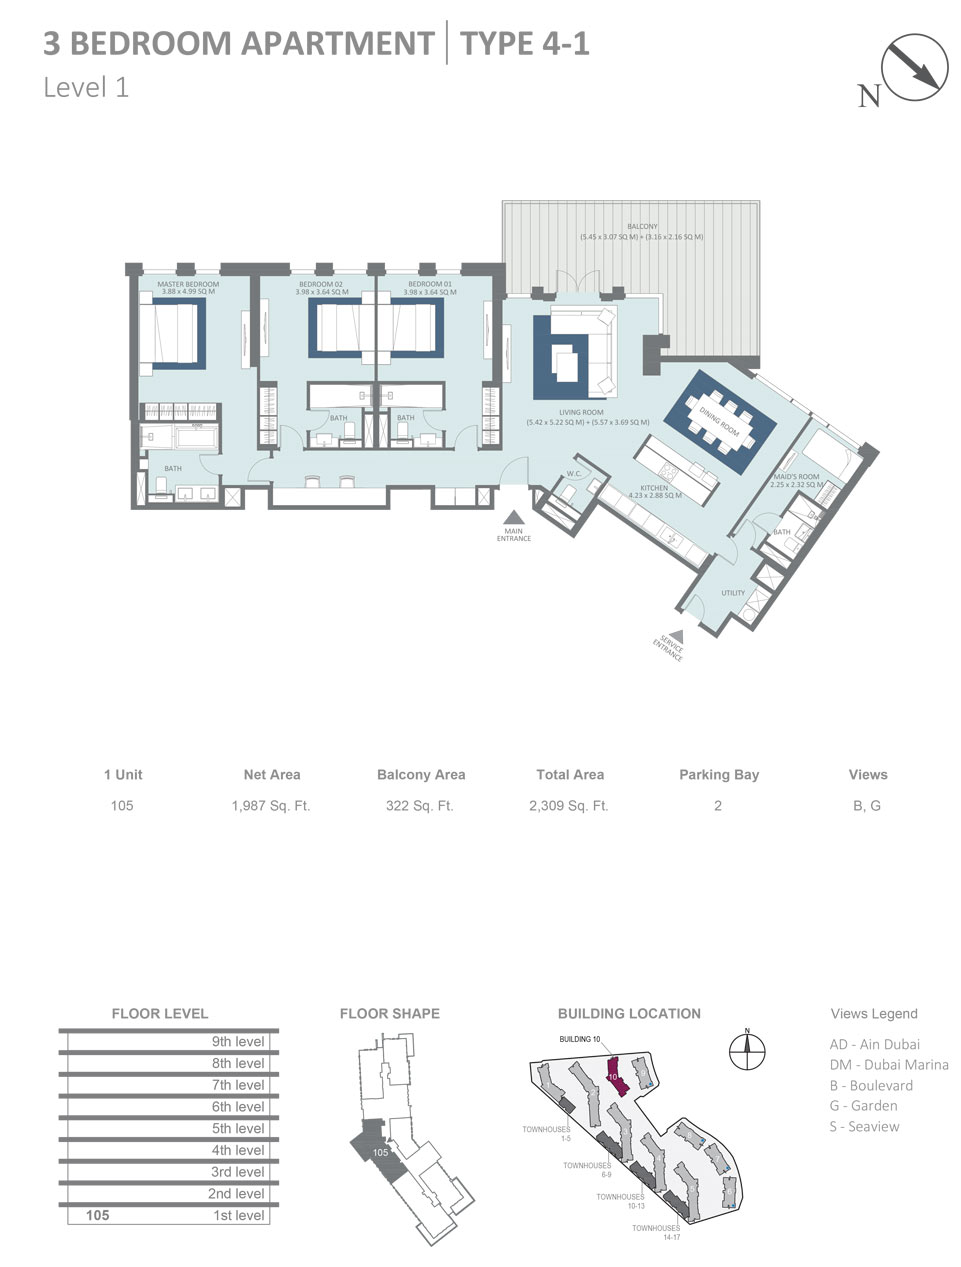 Building 10 - 3 Bedroom Apartment Type 4 - 1, Level 1, Size 2309  sq. ft.